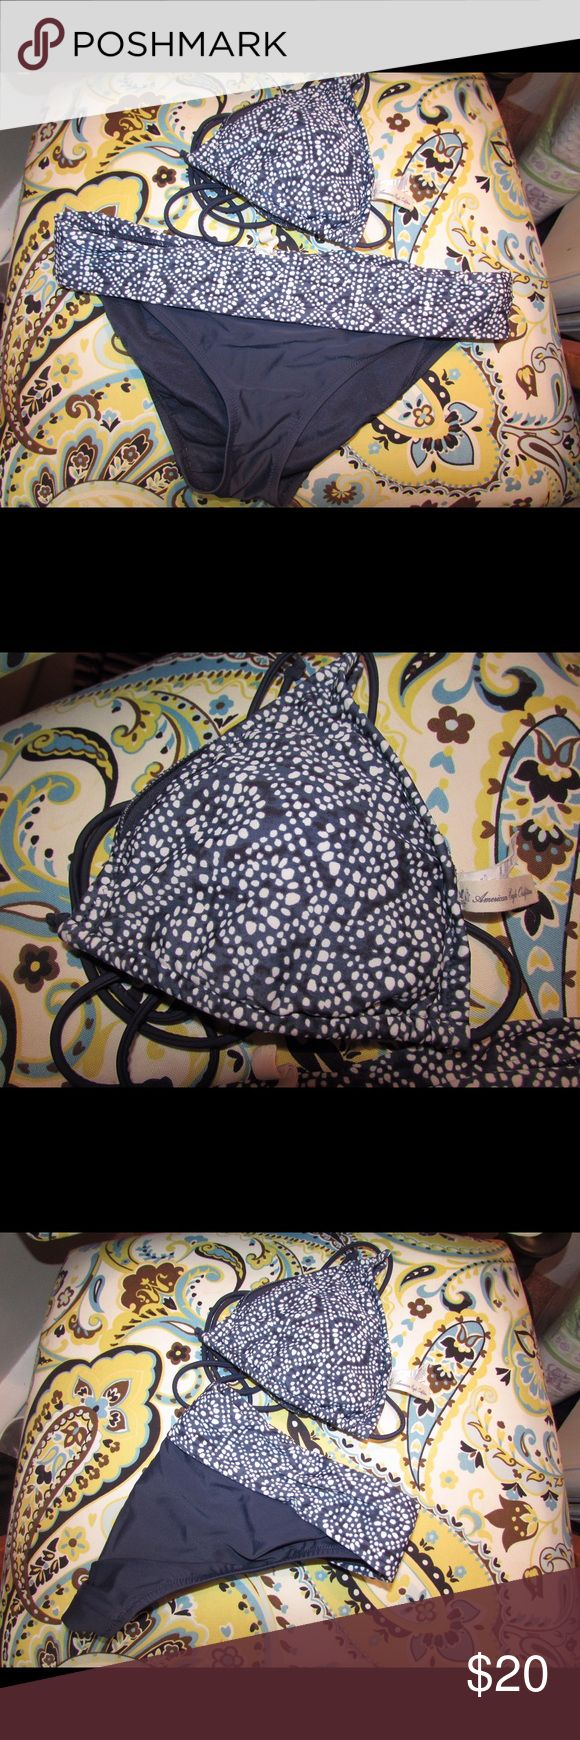 American Eagle Triangle bikini Hardly worn, blue and white American Eagle triangle bikini. Bottoms have a cute waistband matching the pattern on the top. Pads for top are still intact and inside each side of the top. No wear and tear. Like new! I accept reasonable offers 💕 American Eagle Outfitters Swim Bikinis